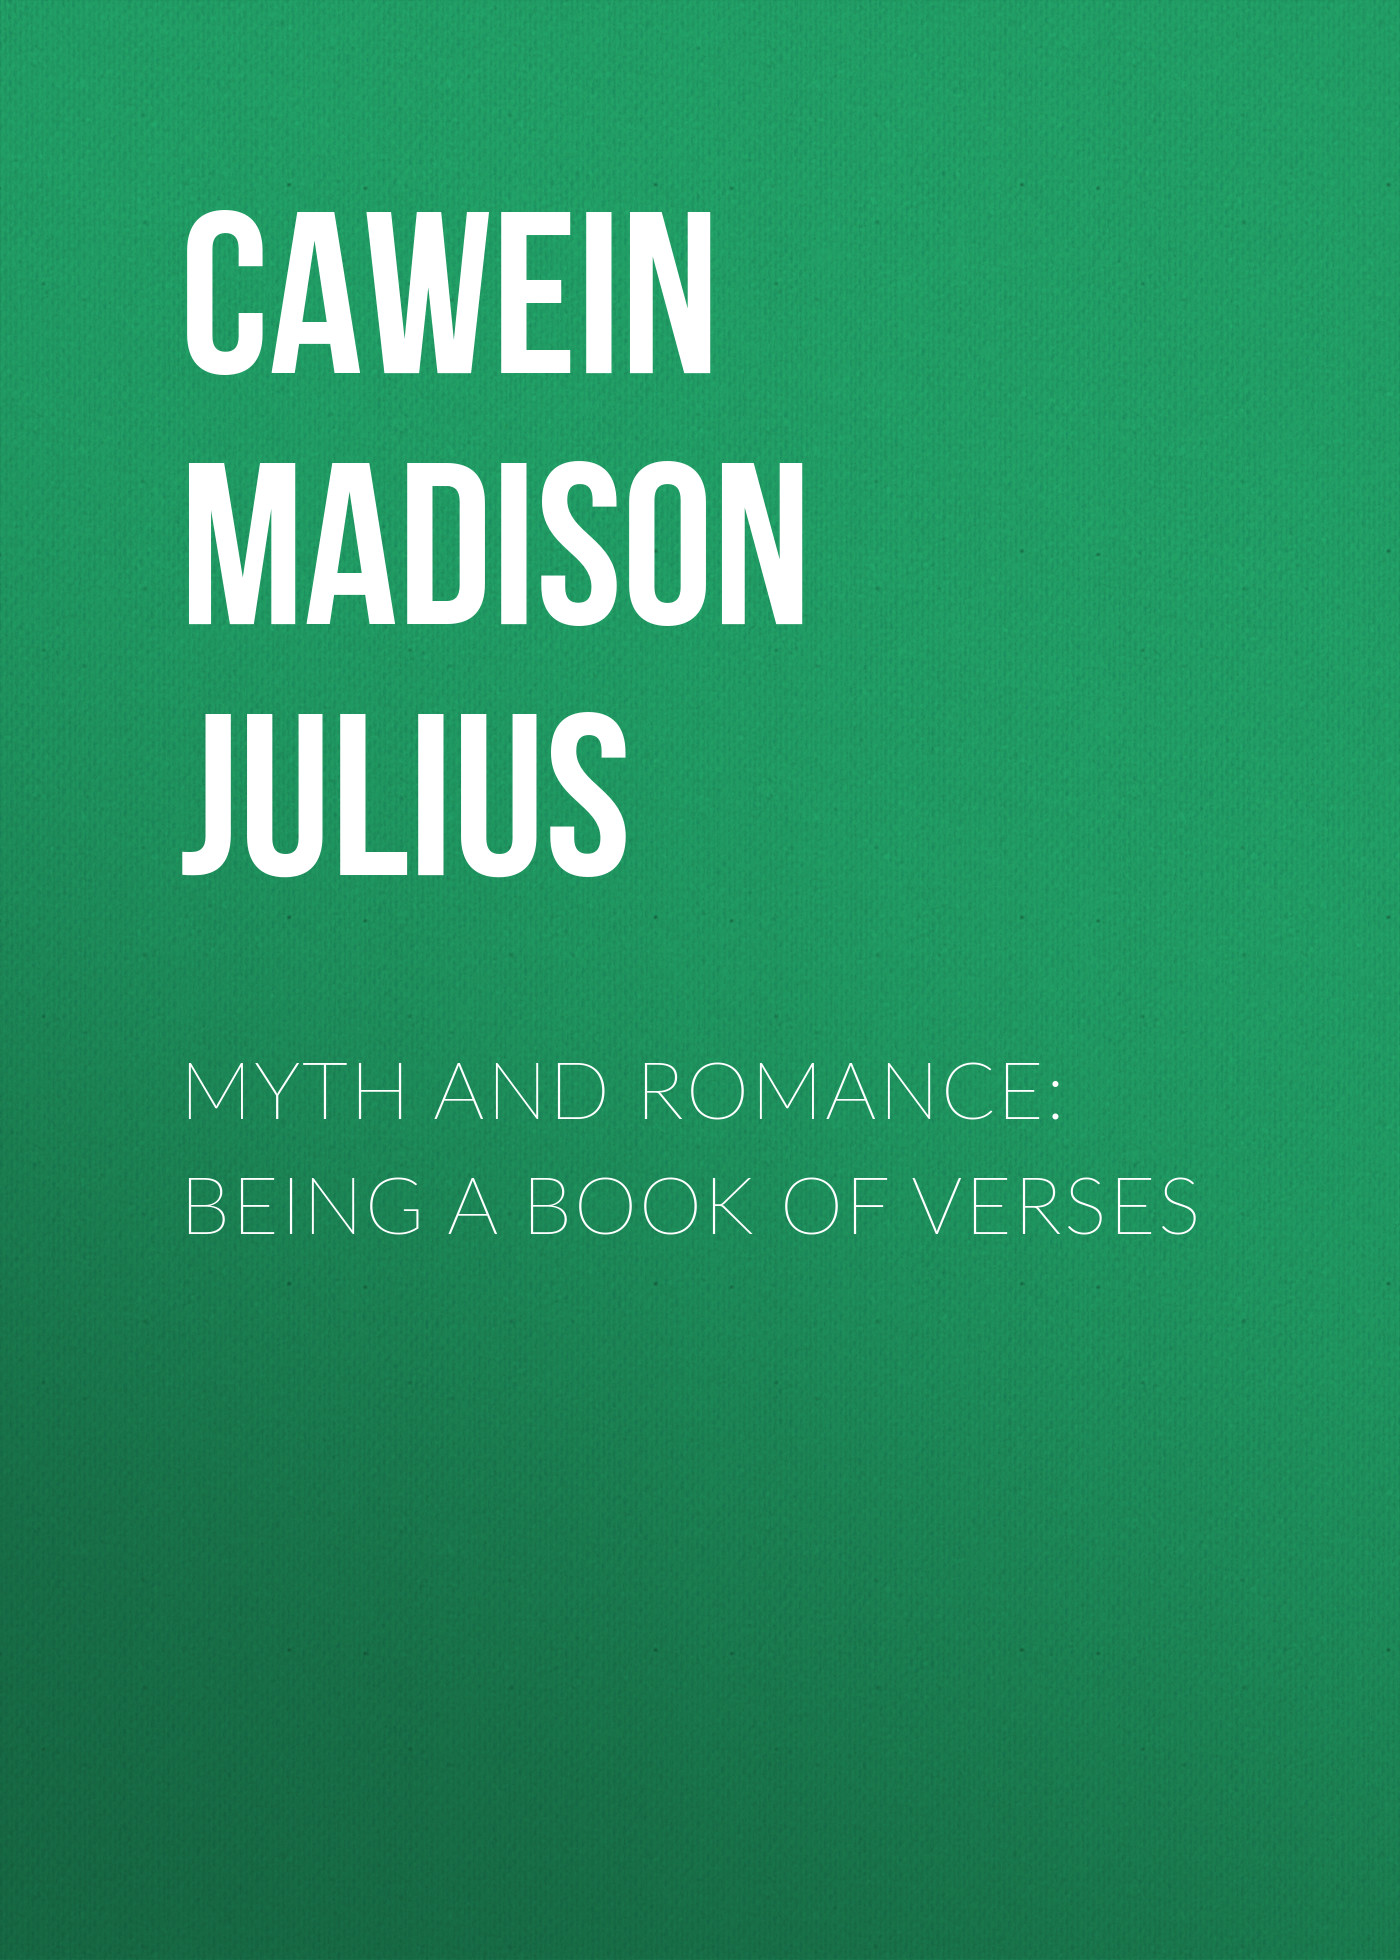 Cawein Madison Julius Myth and Romance: Being a Book of Verses cawein madison julius blooms of the berry